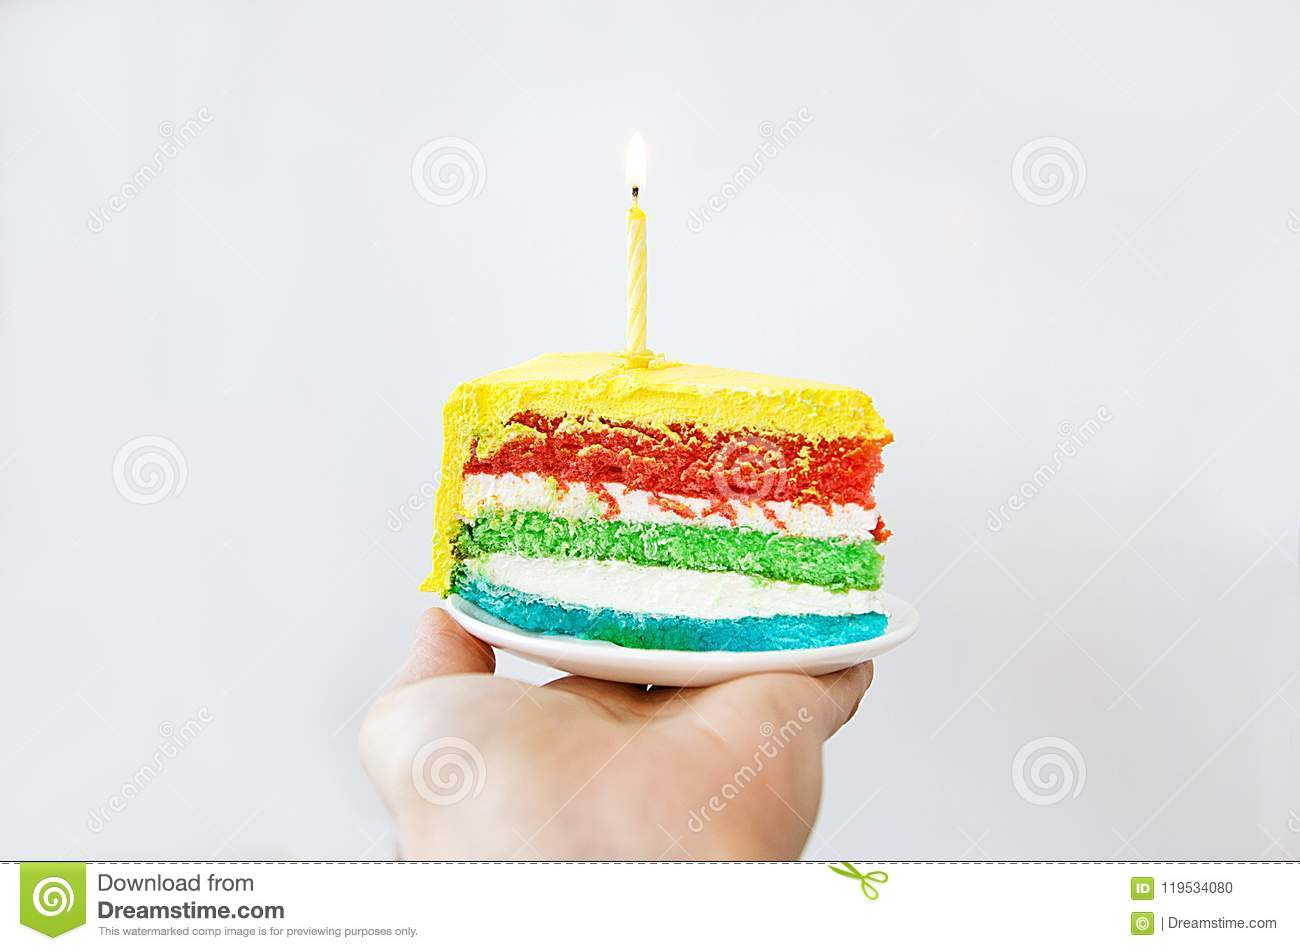 Multi Colored Birthday Cake With One Candle On A Light Background